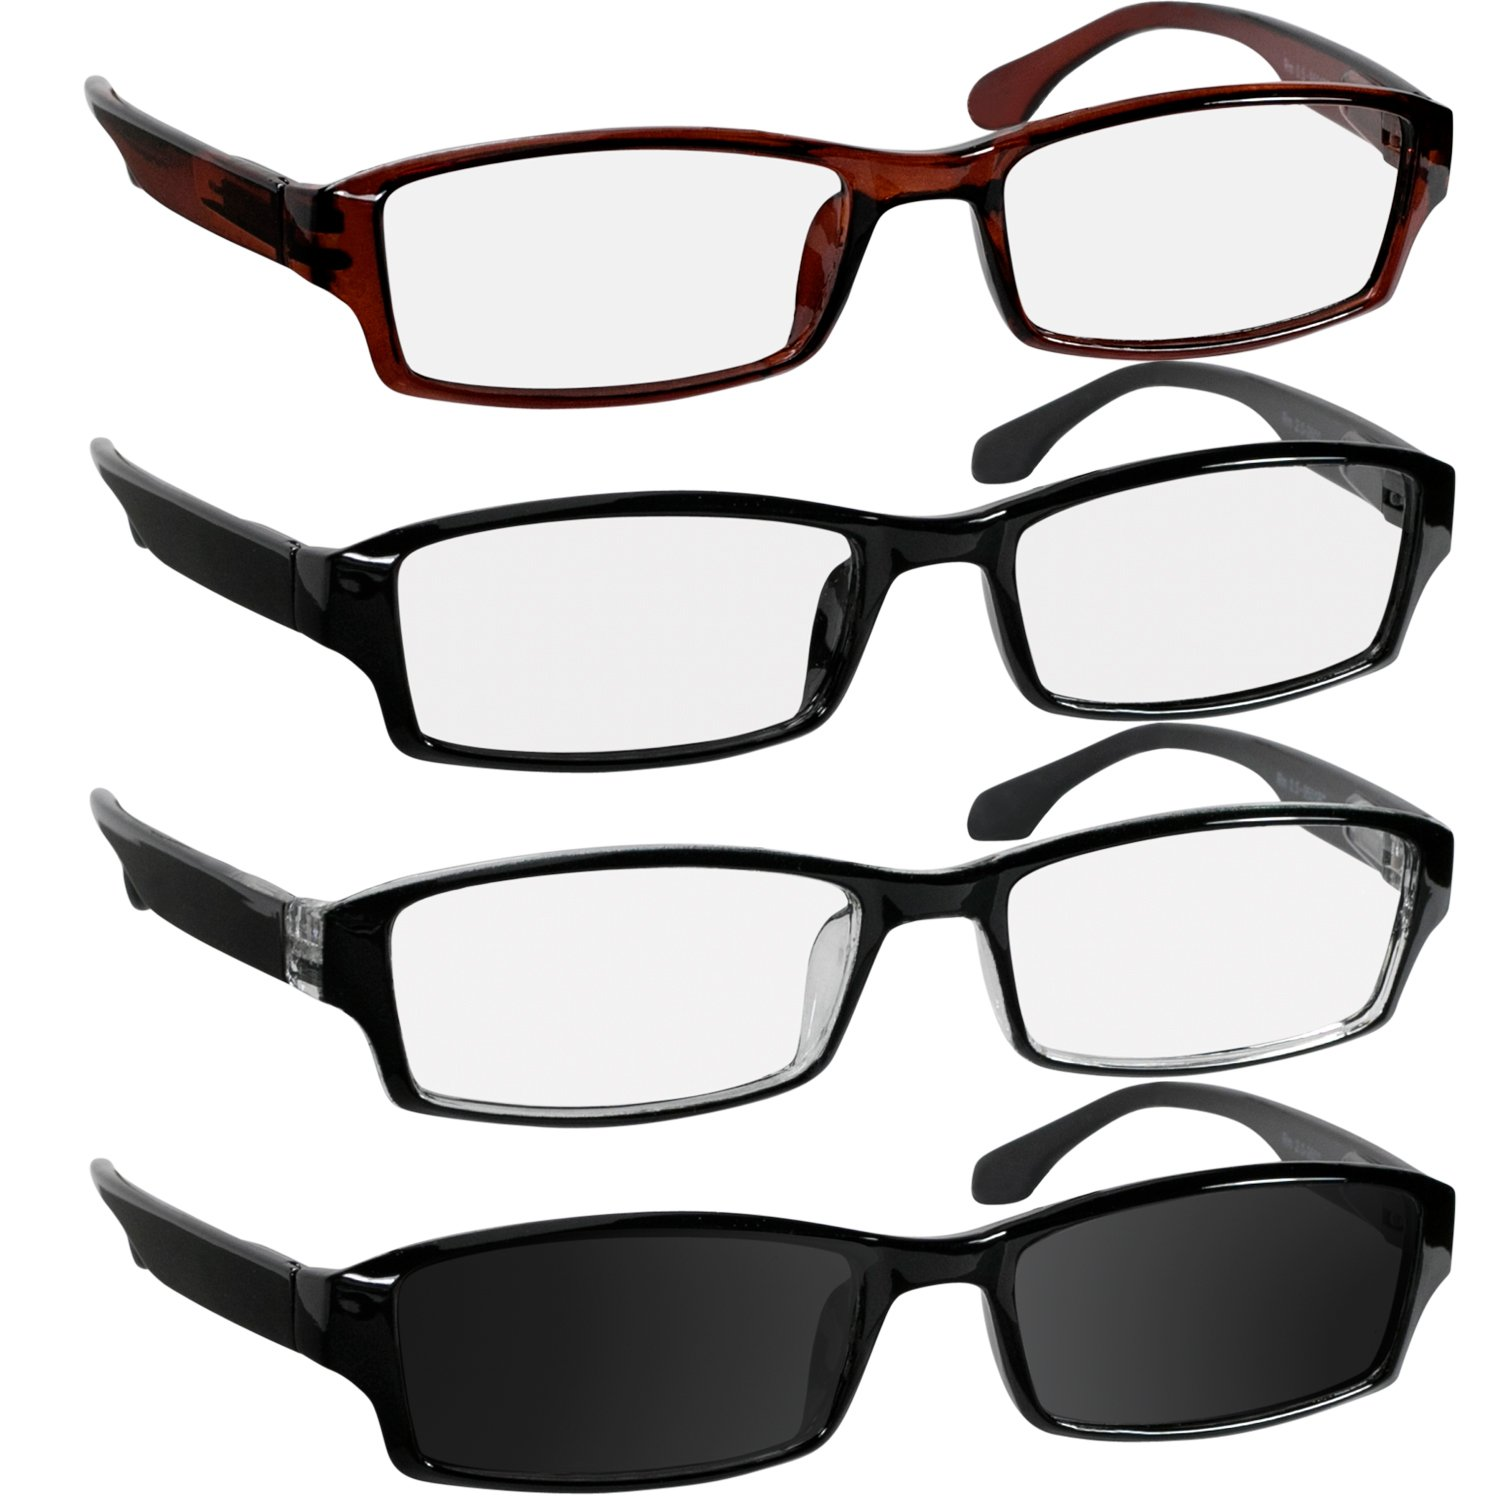 3cf53948e2 Amazon.com  Reading Glasses 1.75 Black Brown Tuxedo   Sun Black Readers for  Men   Women - Spring Arms   Dura-Tight Screws Have a Stylish Look and  Crystal ...